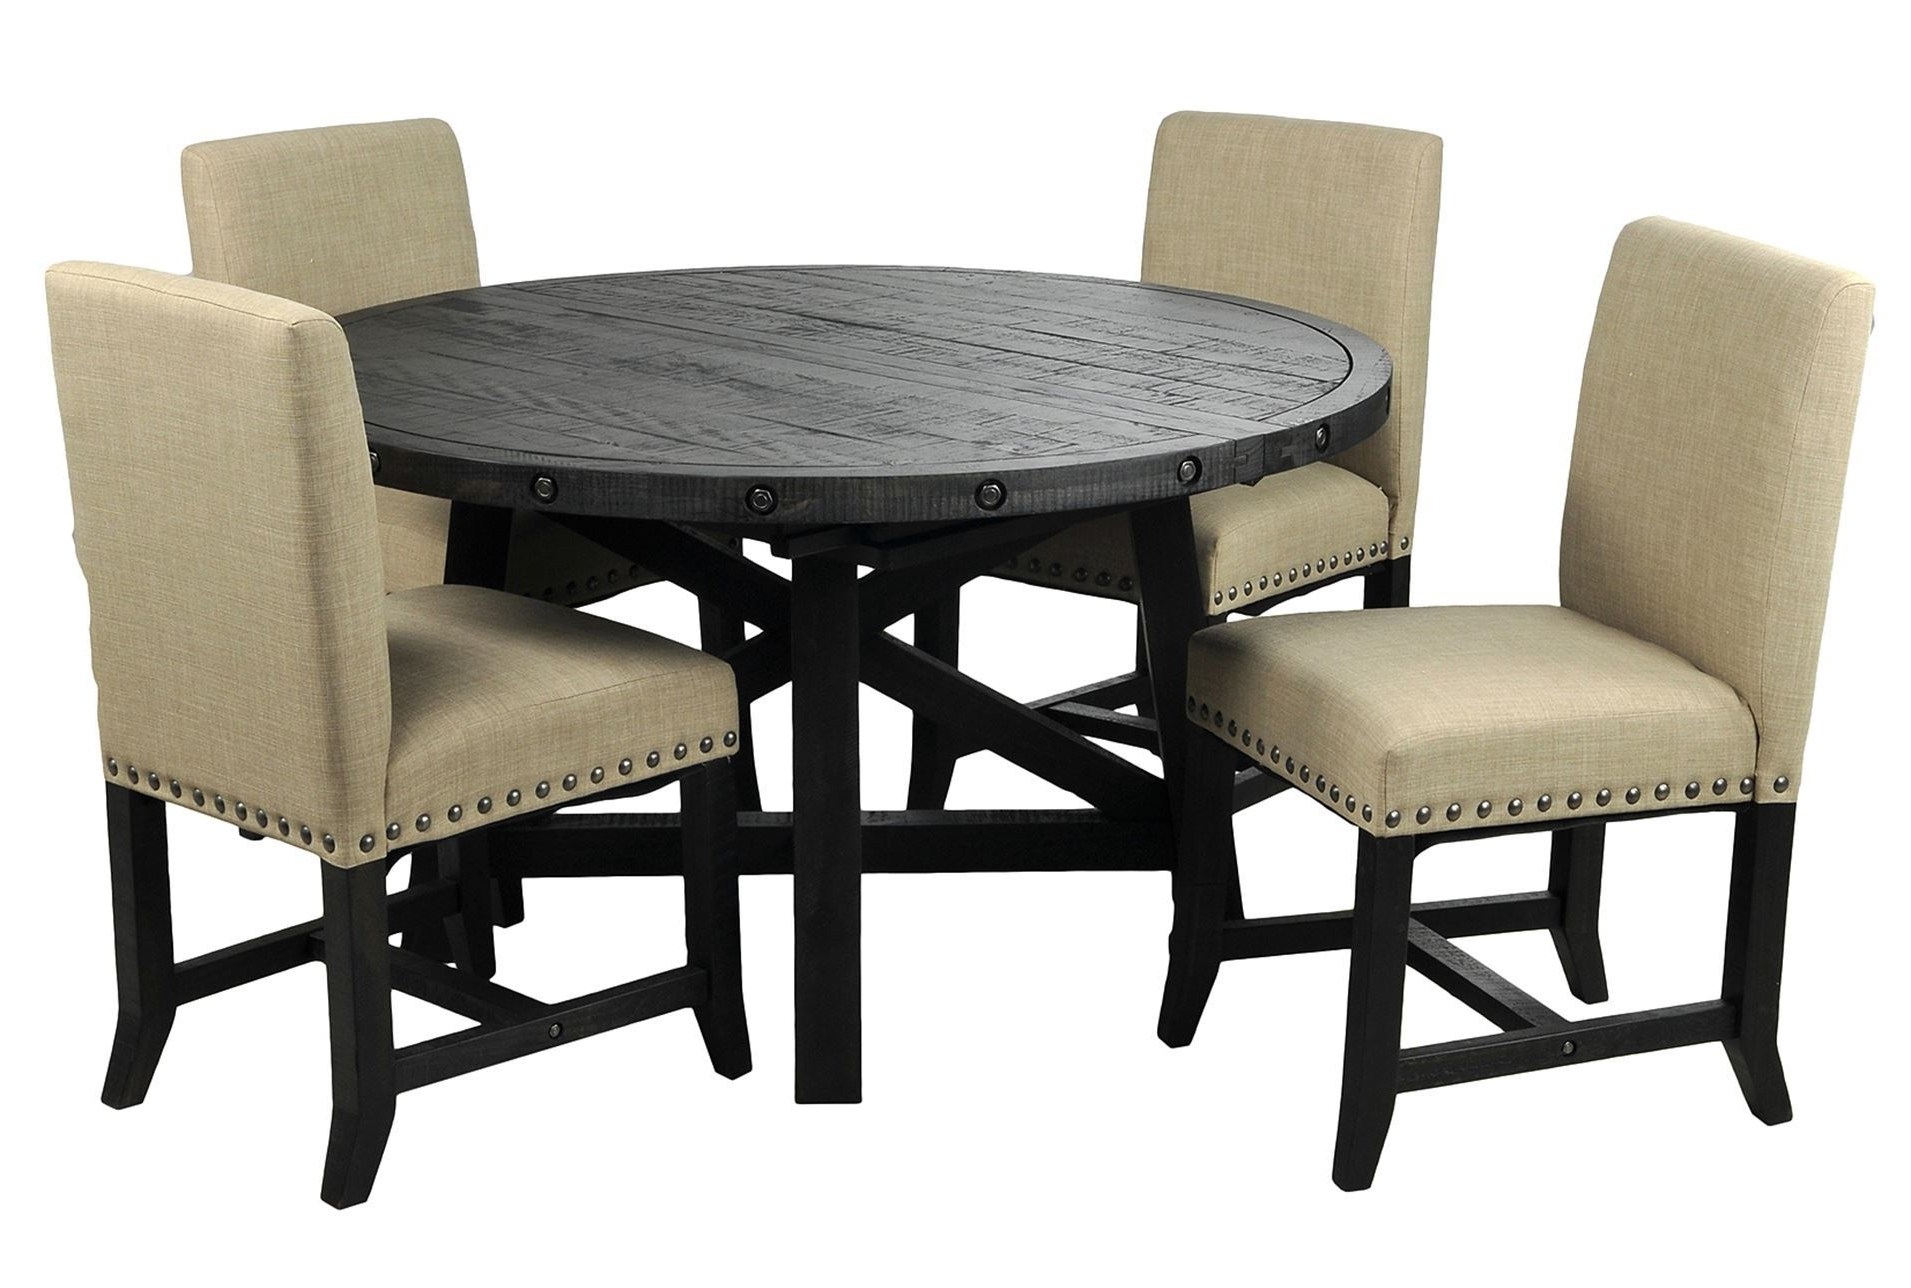 Jaxon 5 Piece Round Dining Set Wupholstered Chairs Dining Set With With Regard To Newest Jaxon 7 Piece Rectangle Dining Sets With Wood Chairs (Gallery 8 of 25)